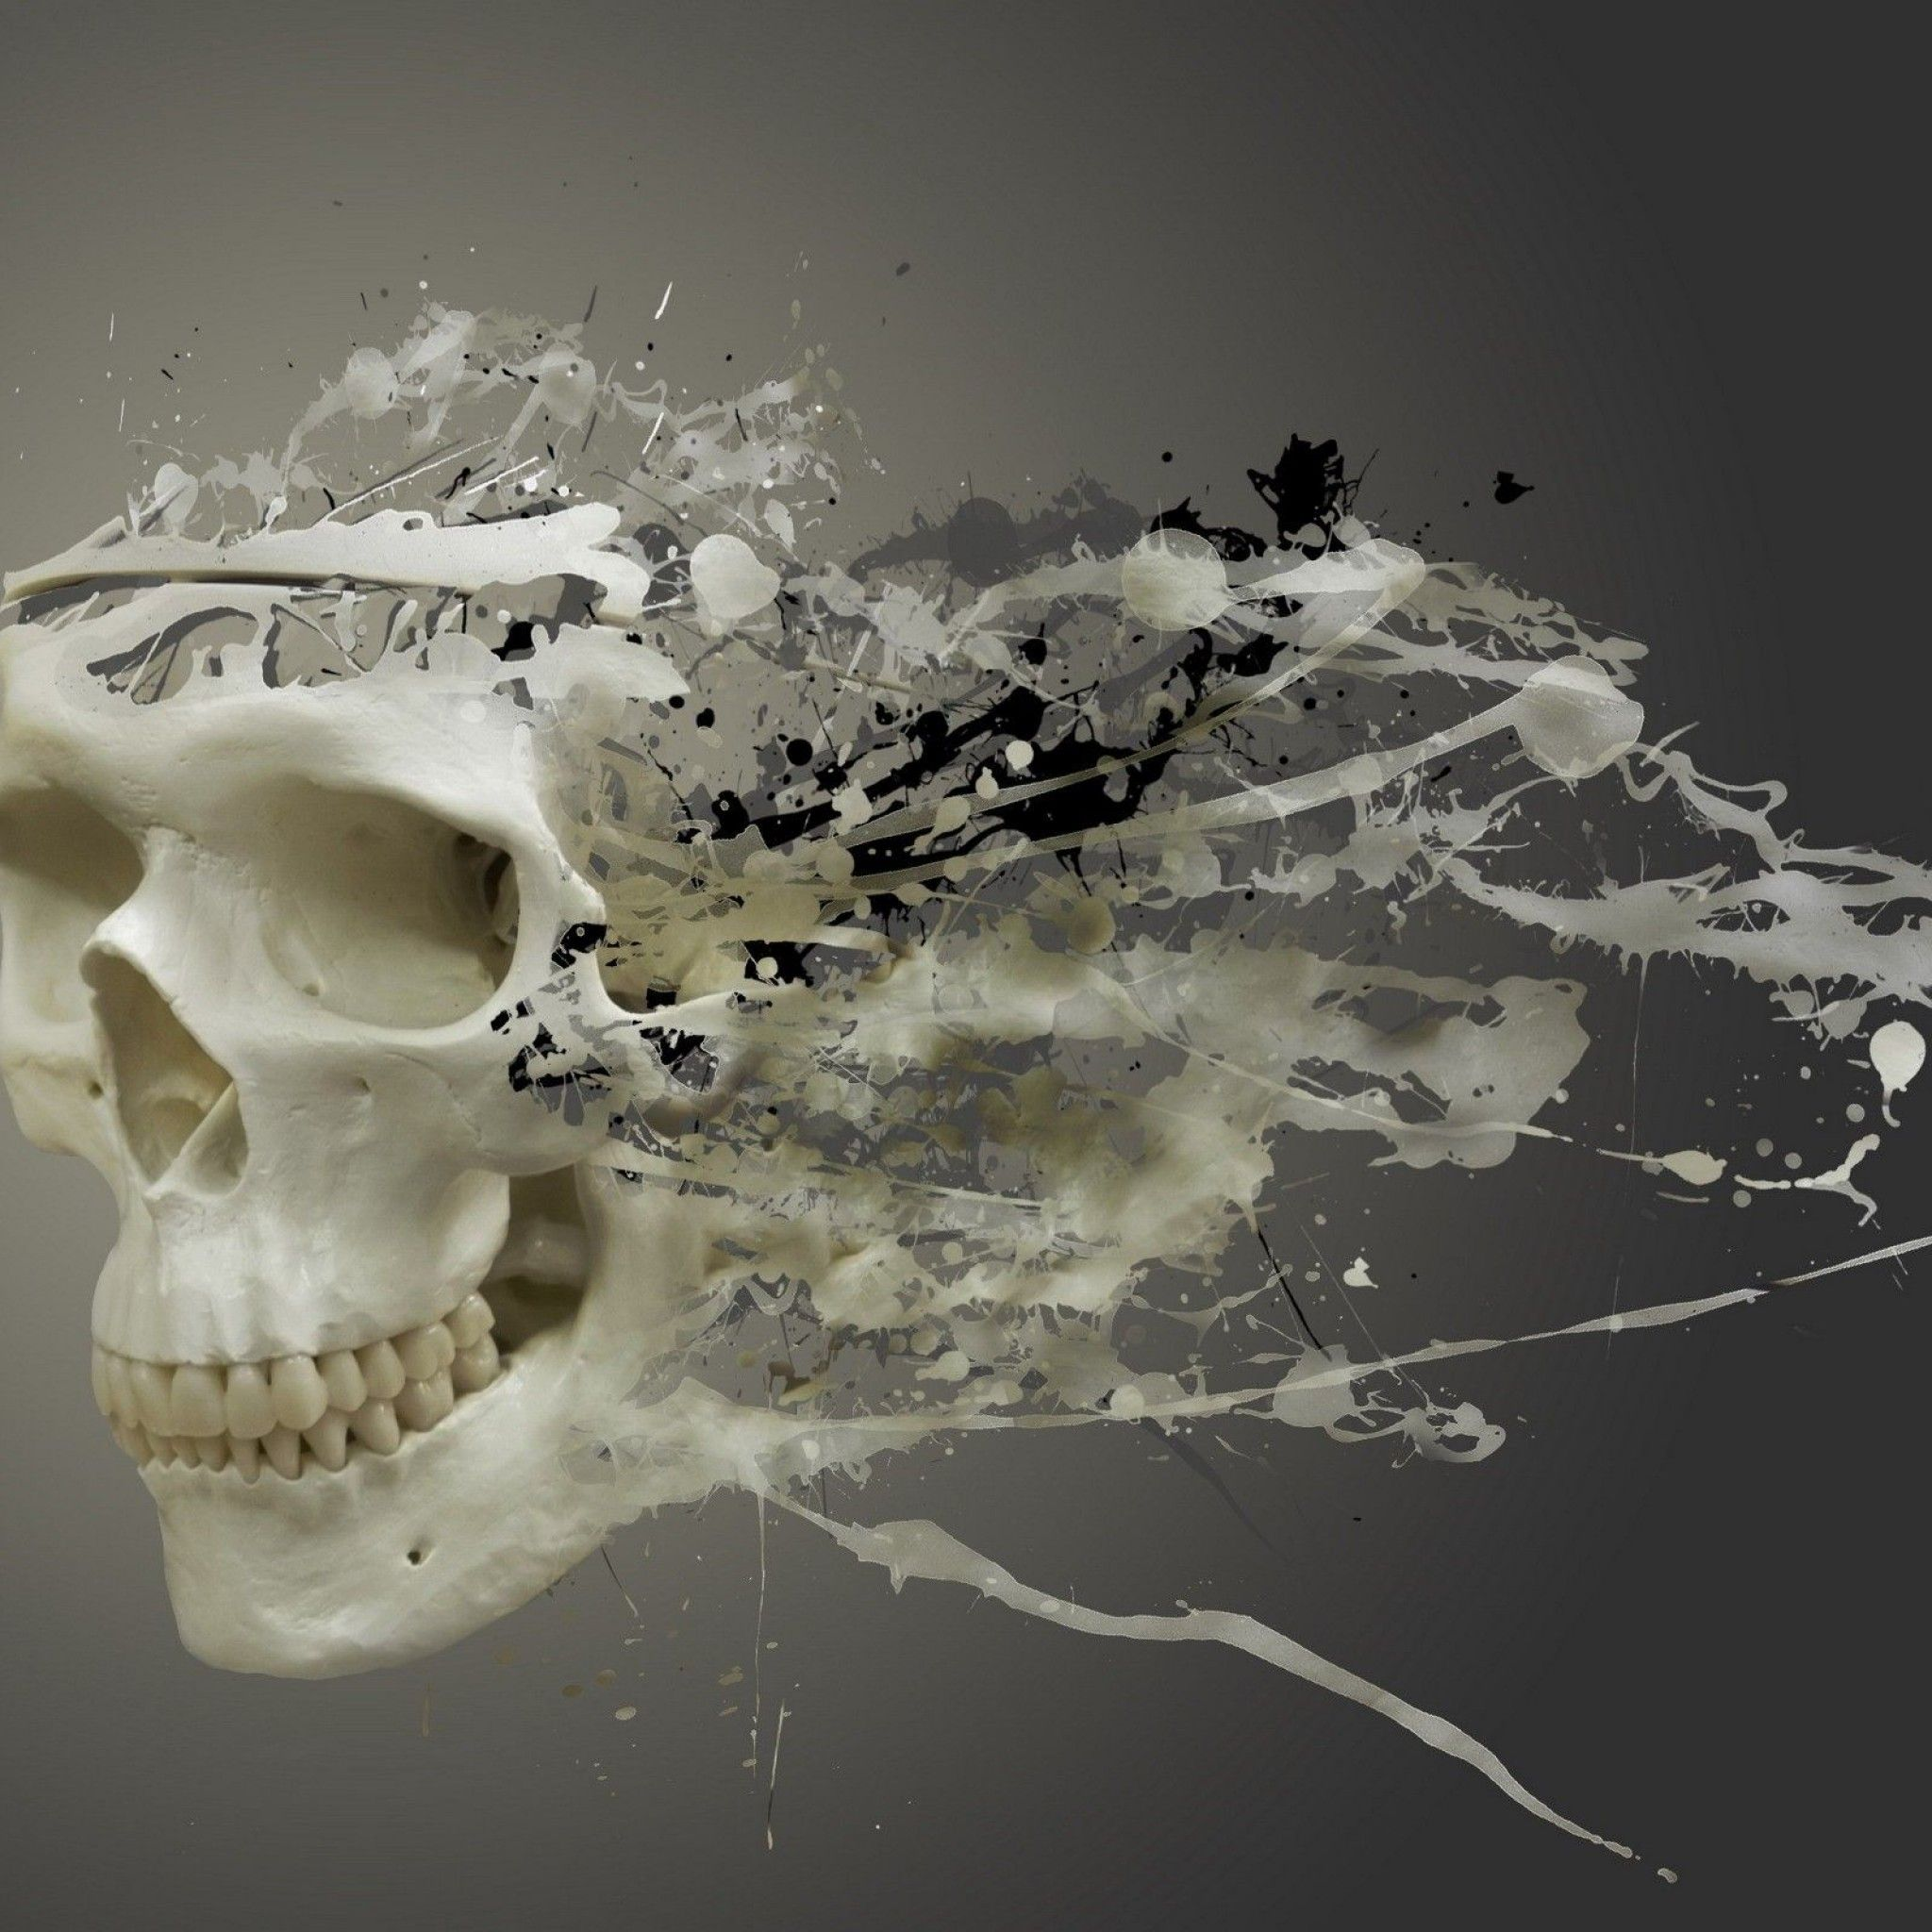 Abstract Skull Art IPad Wallpaper HD #iPad #wallpaper